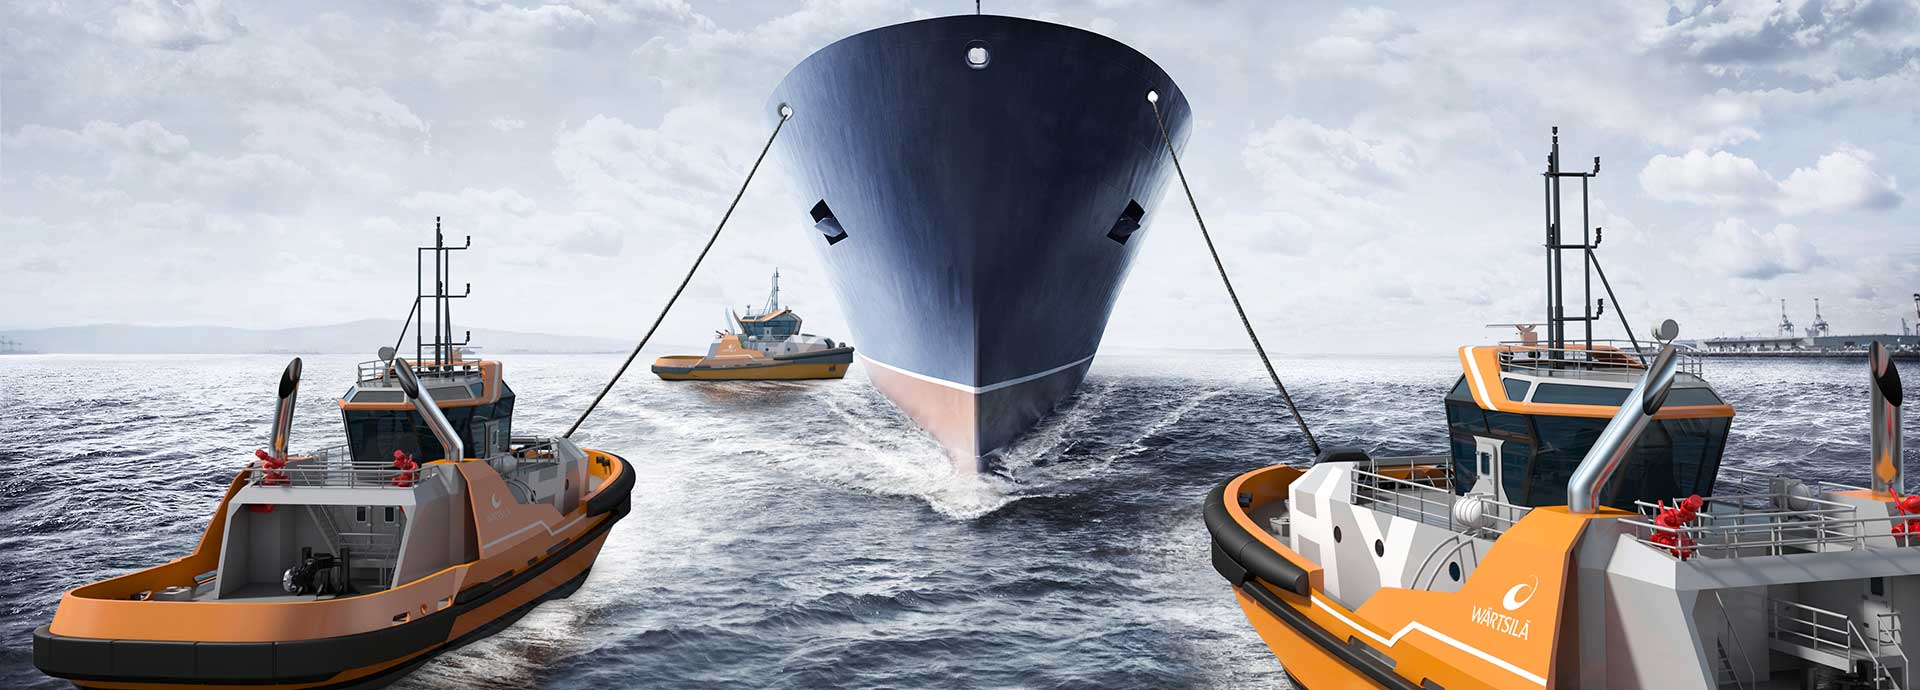 The Wartsila HY TUG system Electric hybrid designs to save costs and reduce emissions